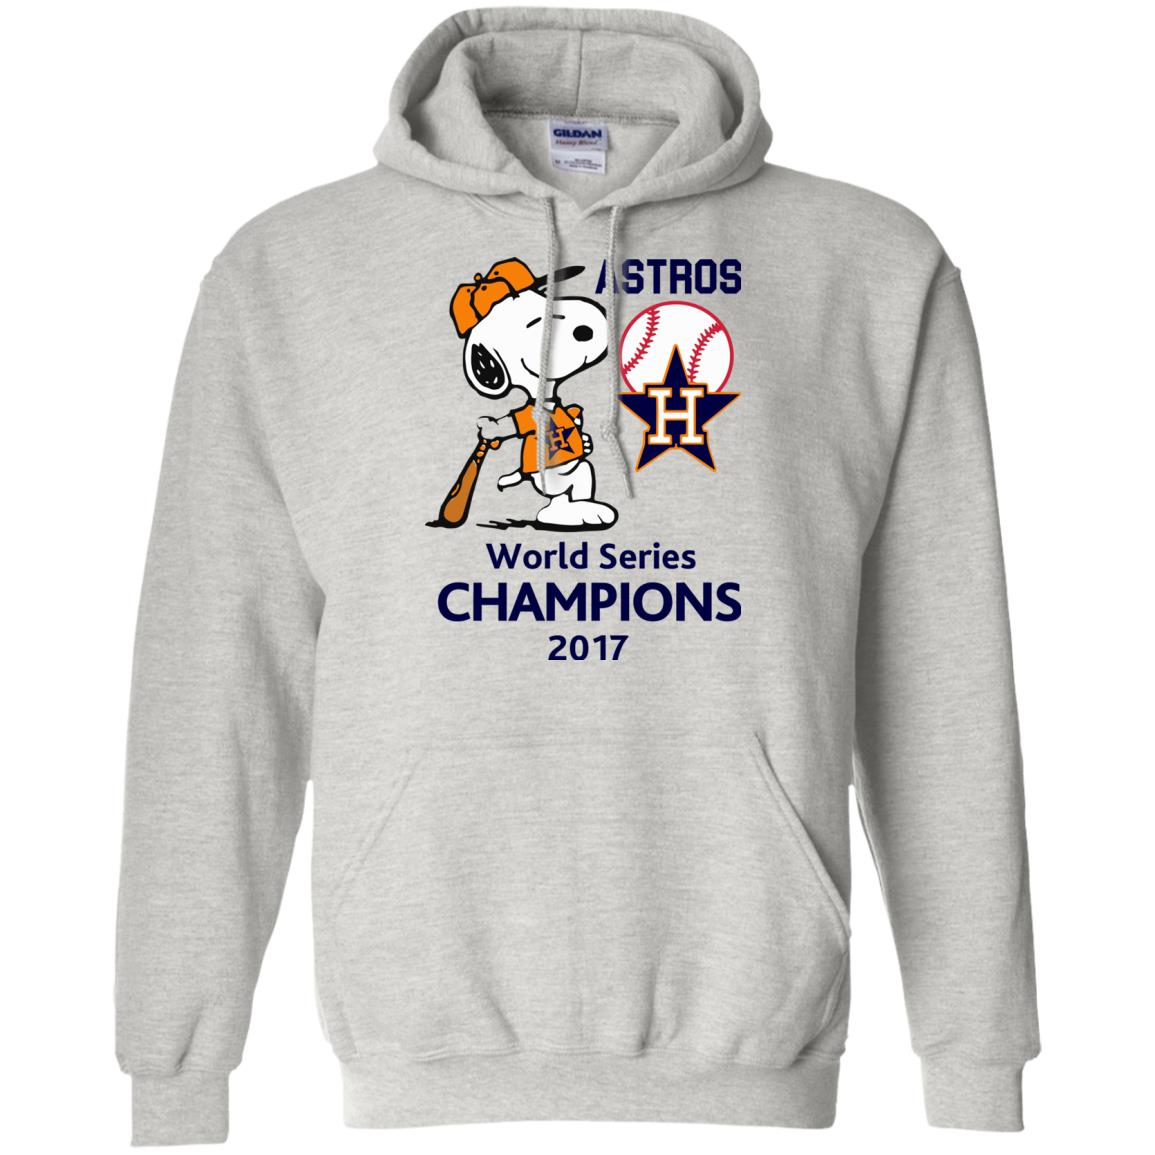 image 955 - Snoopy Astros World Series Champions Shirt, Sweater, Hoodie